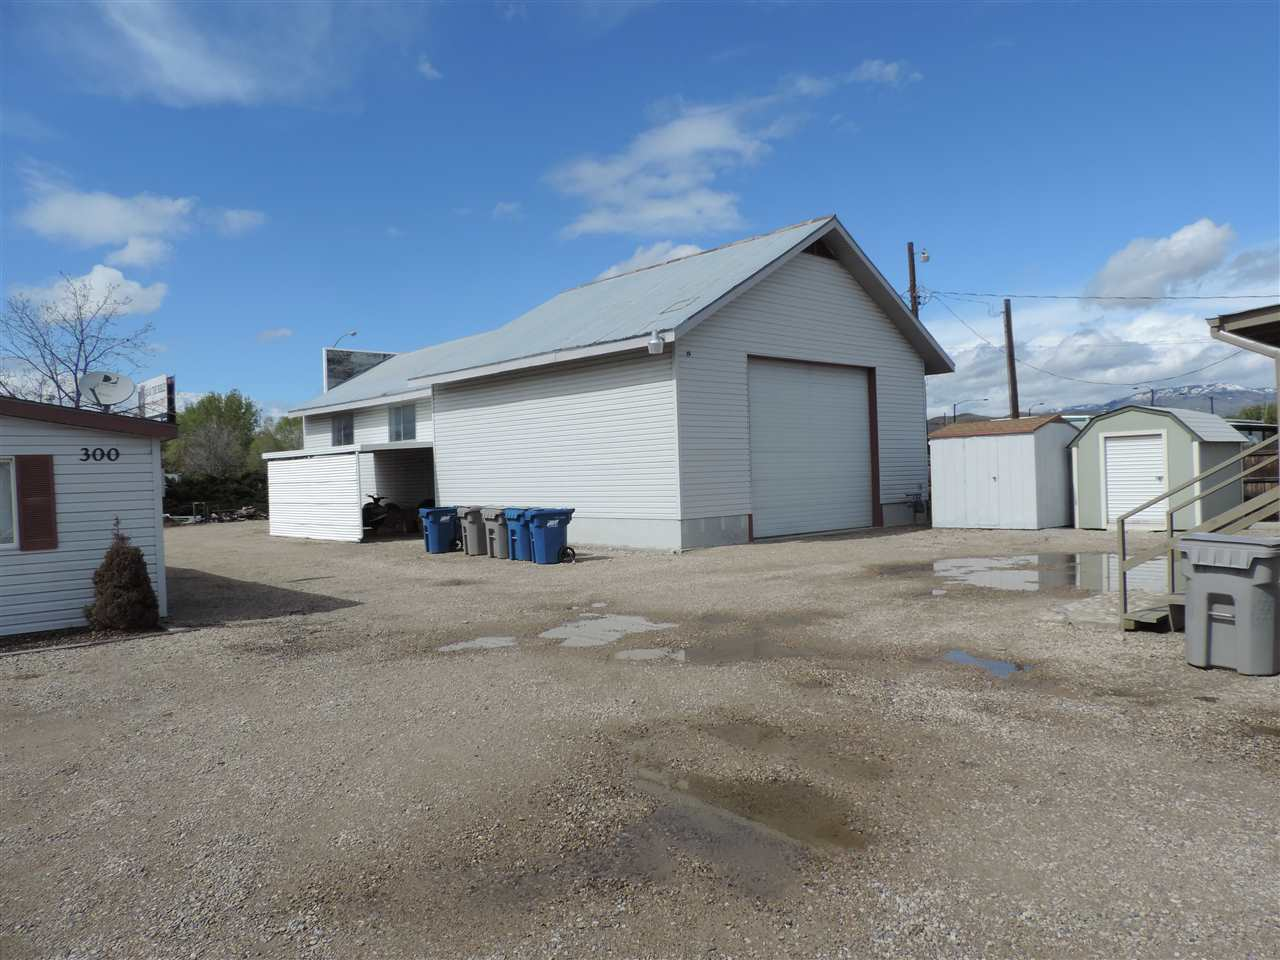 300 E 41st and 302, 304,306, Garden City, ID 83714